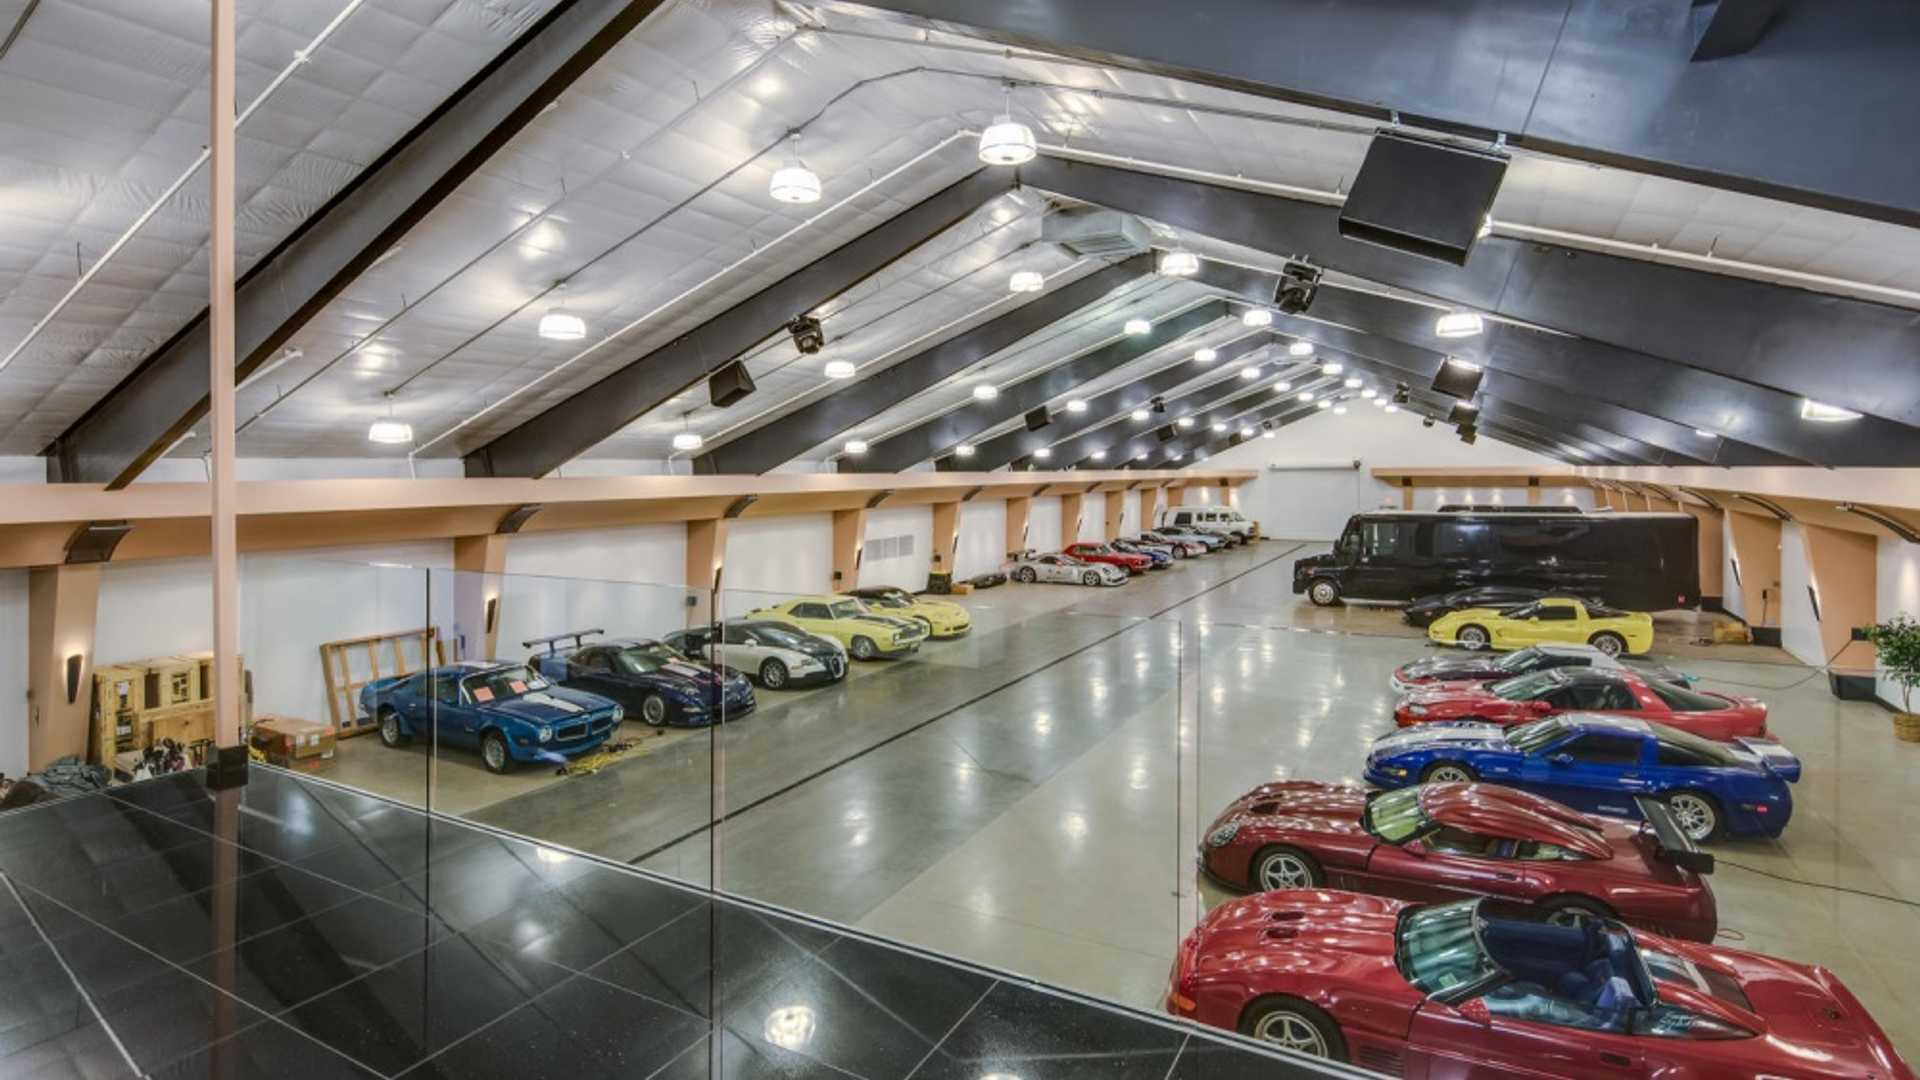 Black Auto Rim Shop >> Racer's Colorado Estate Houses 100-Car Auto Museum | Motorious